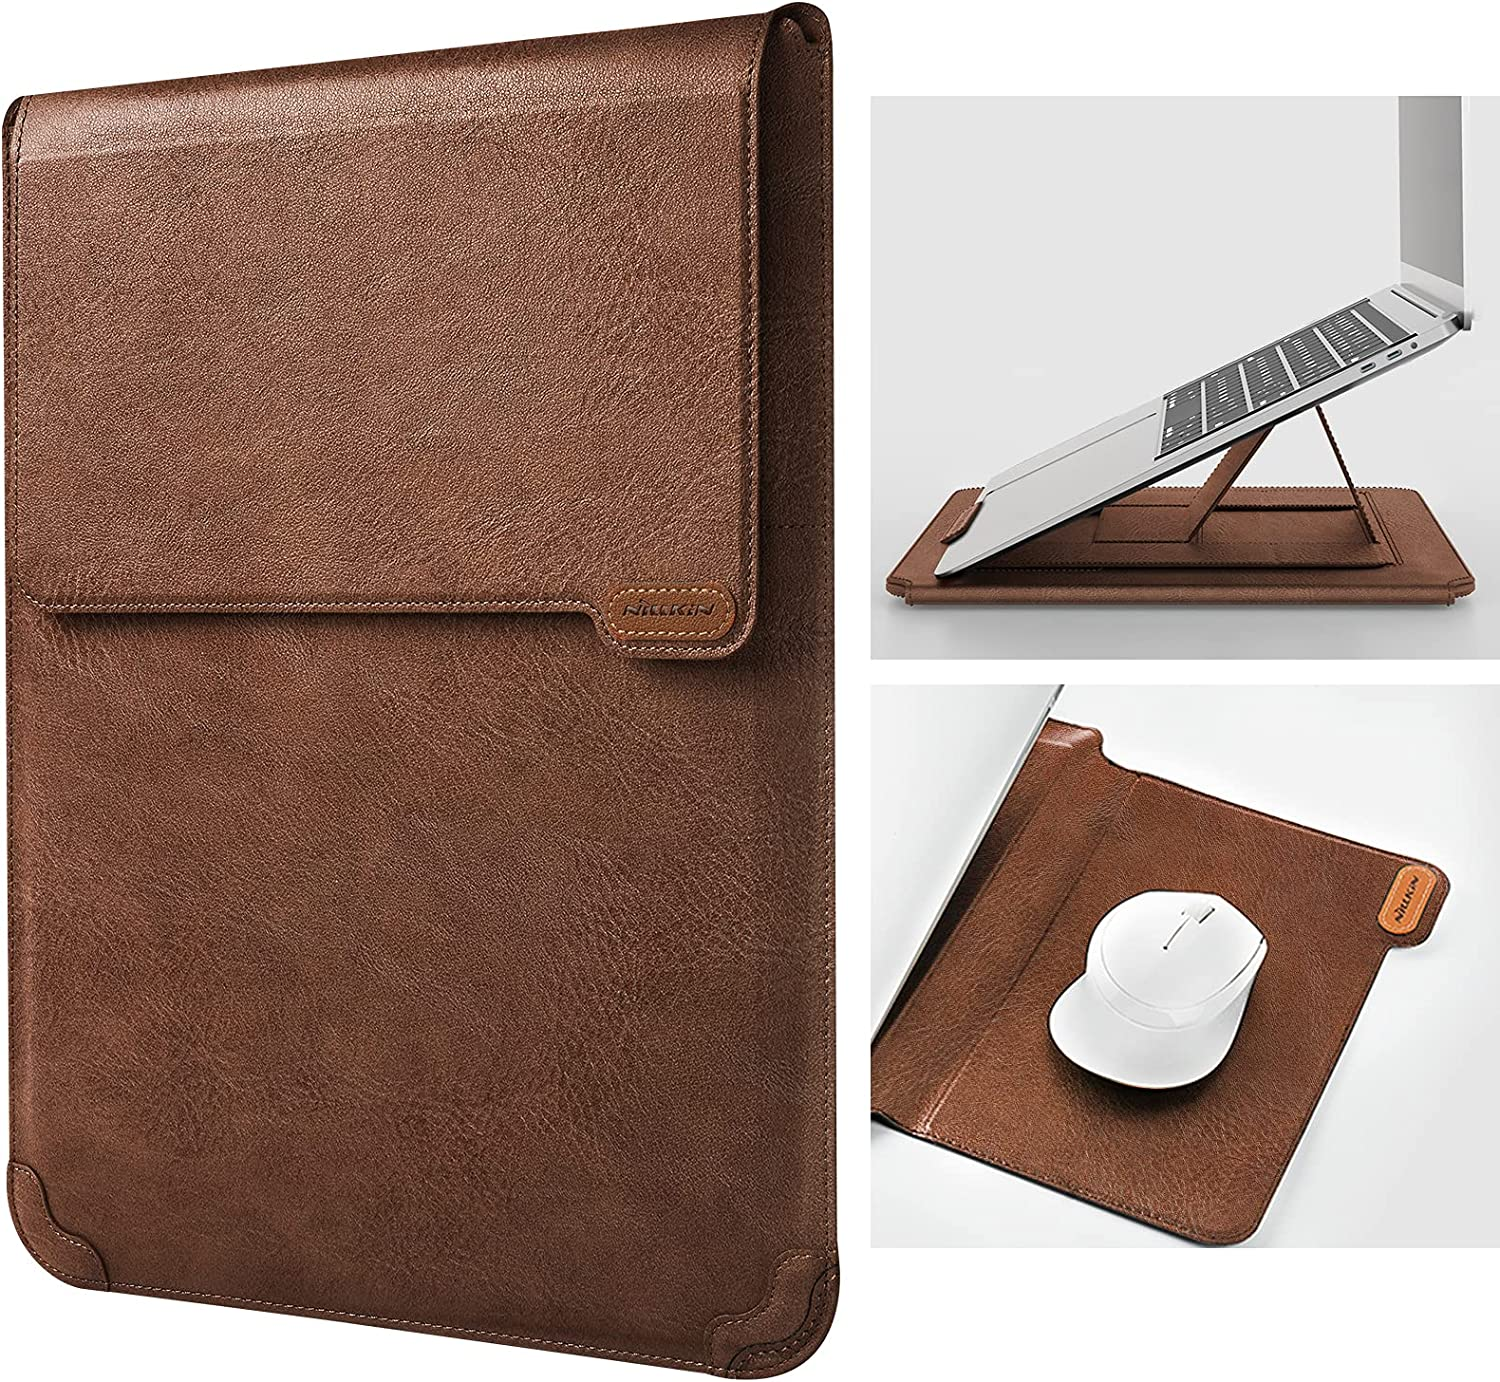 Nillkin 13 inch Laptop Sleeve Case Laptop Stand Adjustable, Computer Shock Resistant Bag with Mouse Pad for 13